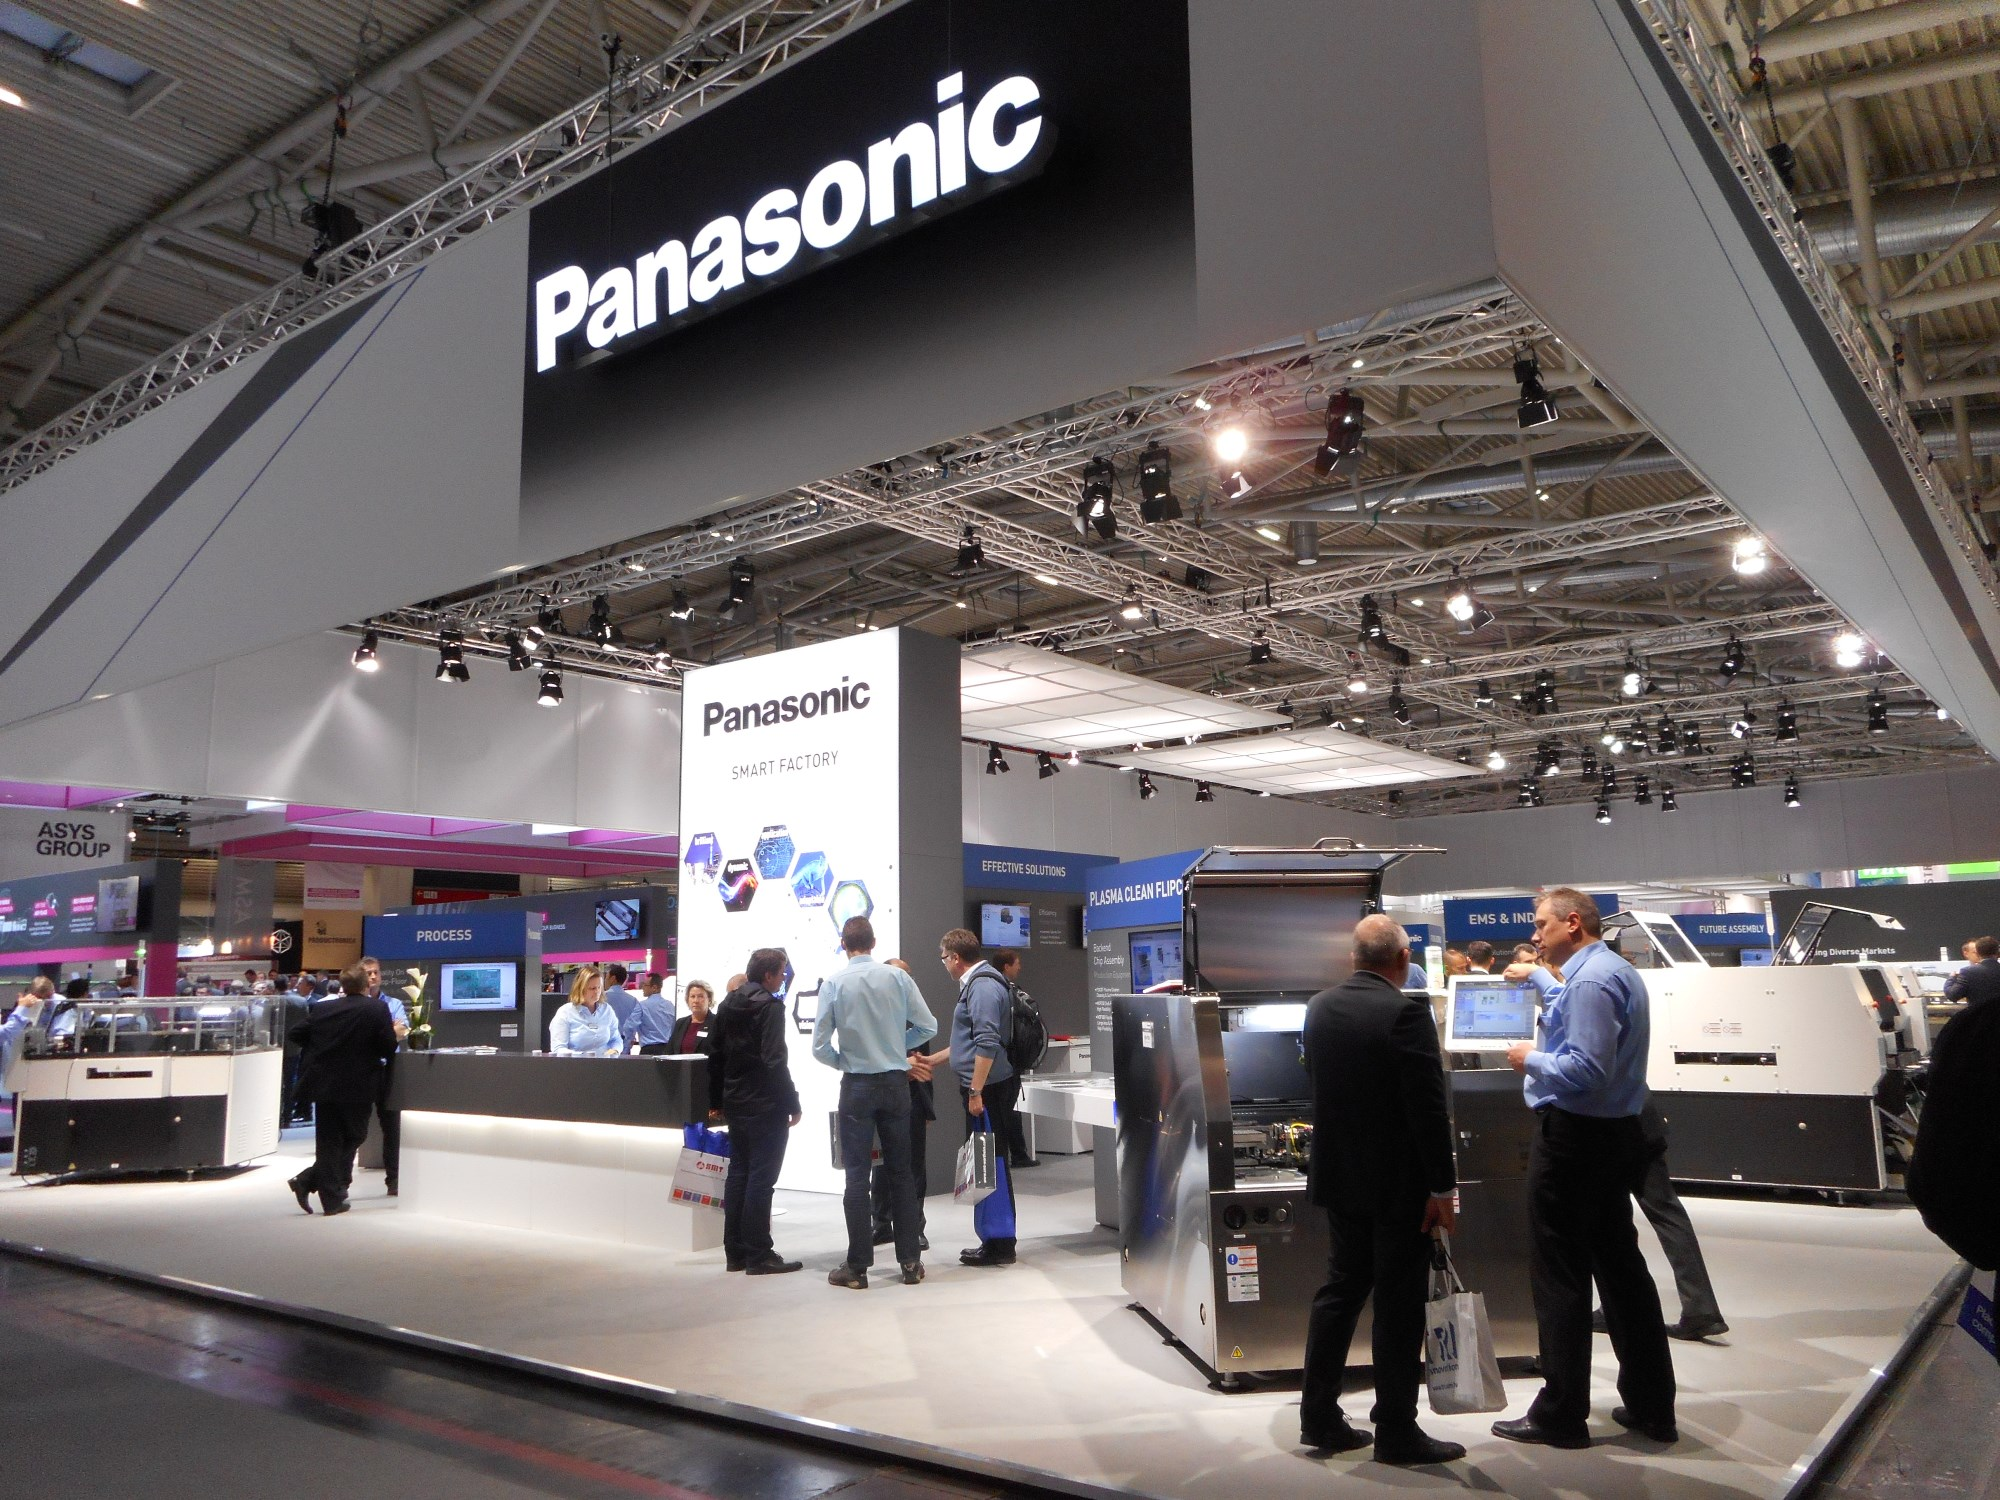 Panasonic Proposed Advanced Factory Solutions At